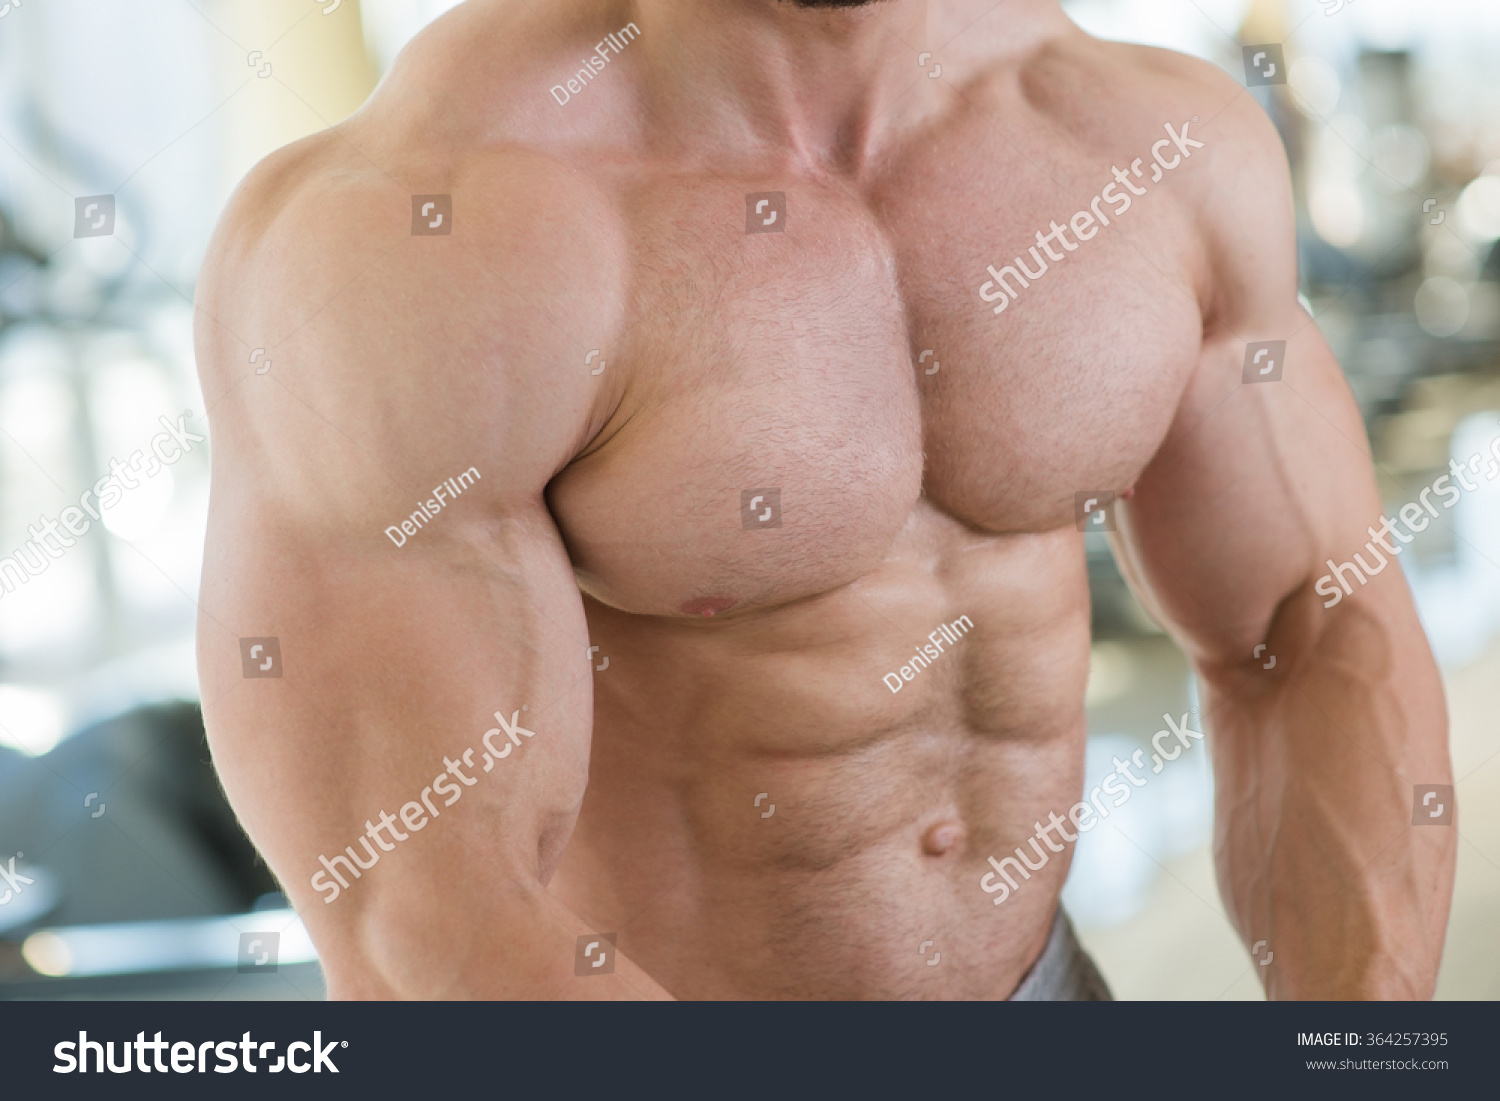 Muscular Torso Arms Bodybuilder Huge Muscles Stock Photo (Safe to ...